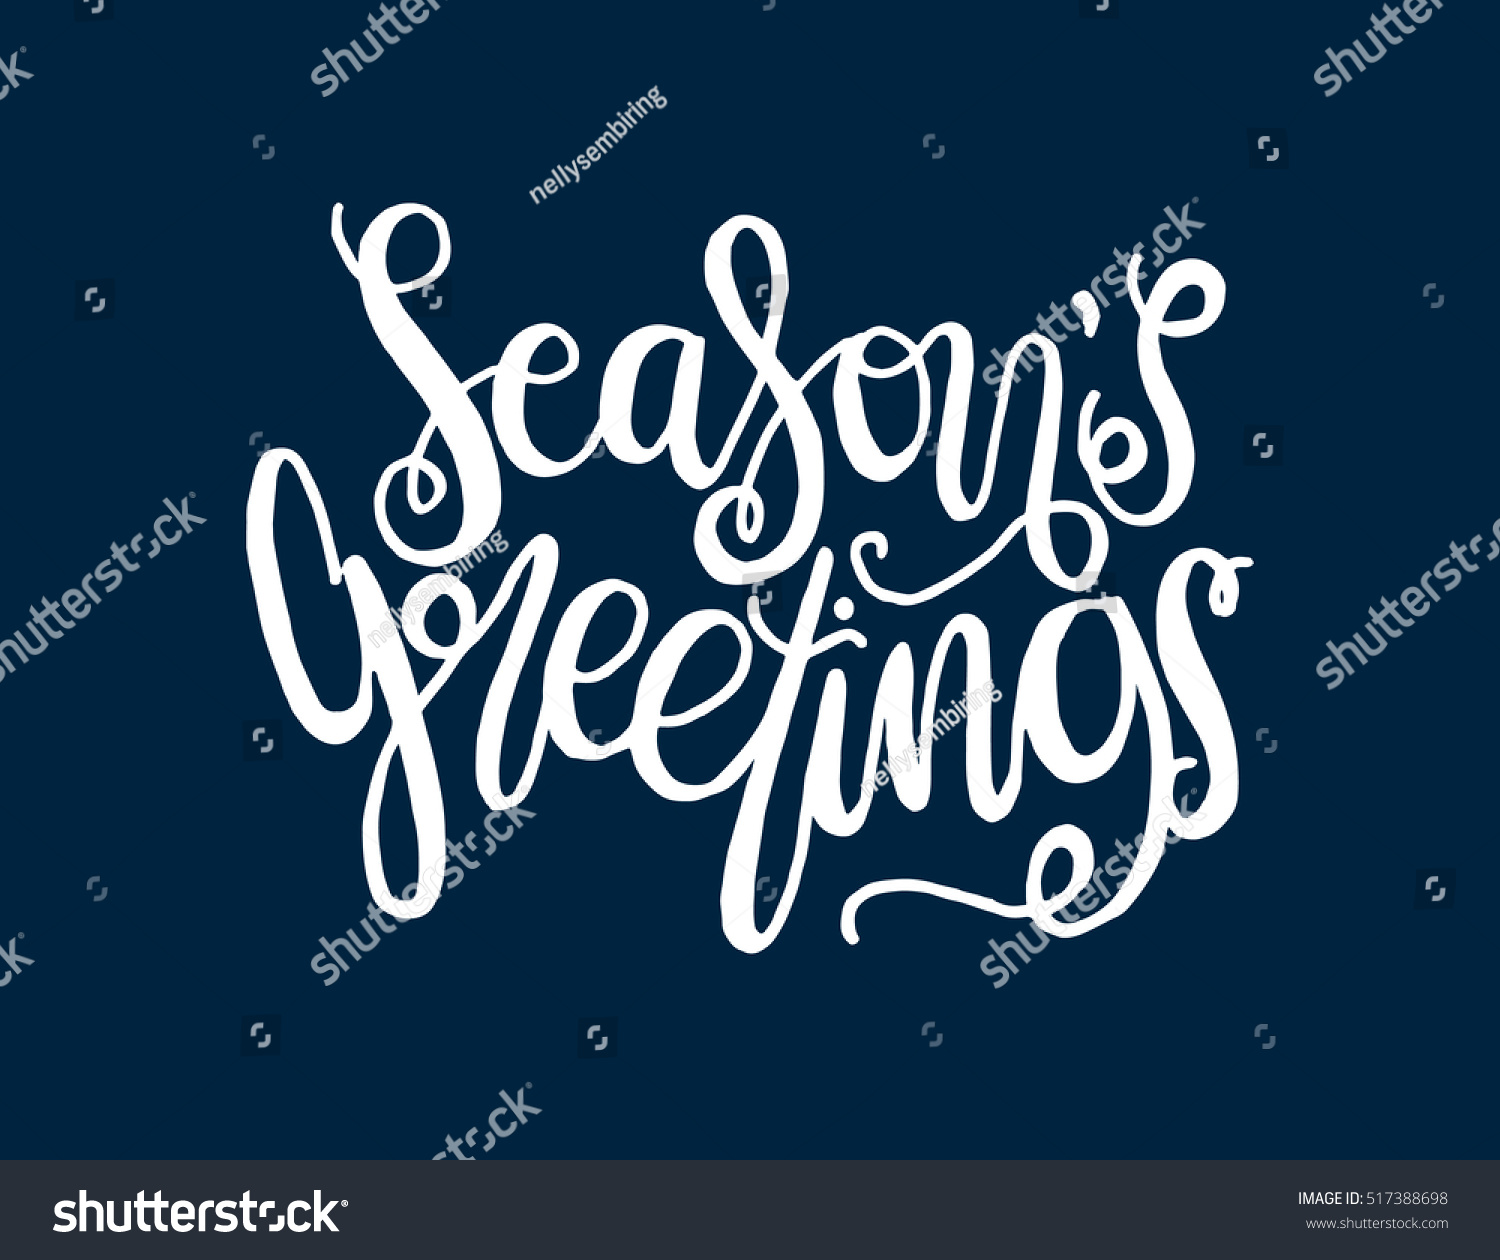 Seasons greetings hand lettered quote bible stock vector